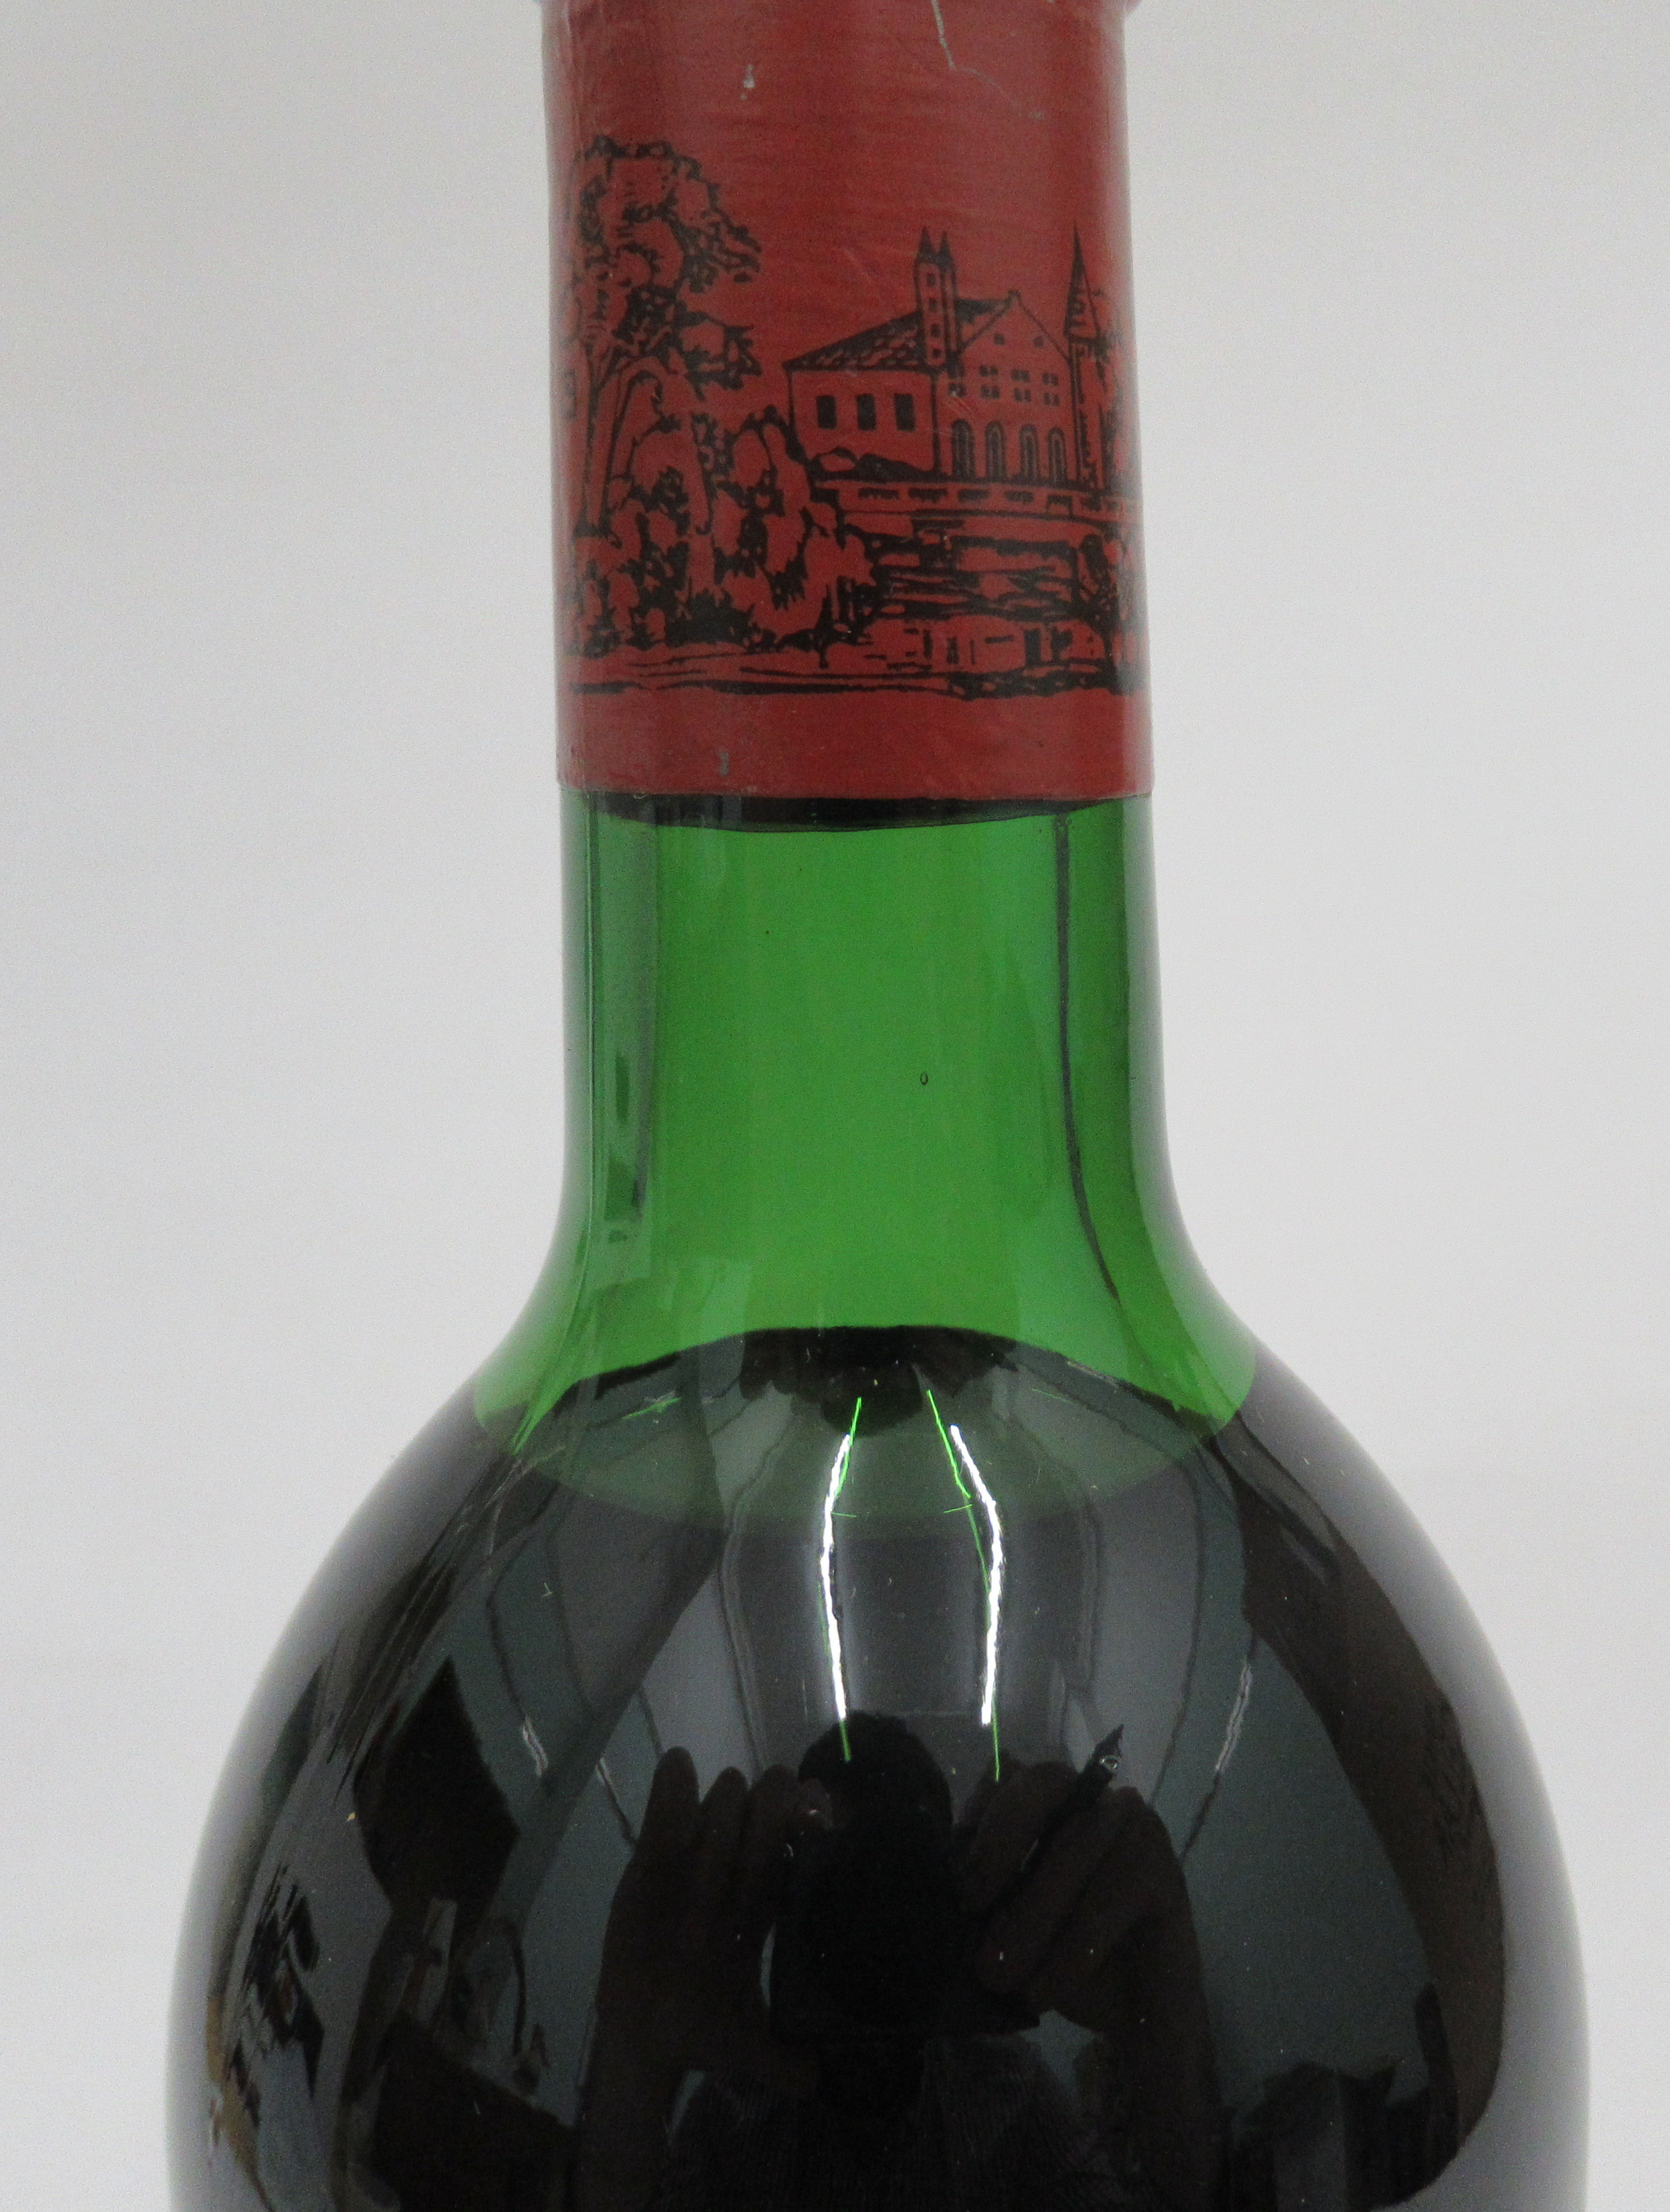 Wine, a bottle of 1983 Chateau Lafite Rothschild - Image 2 of 3